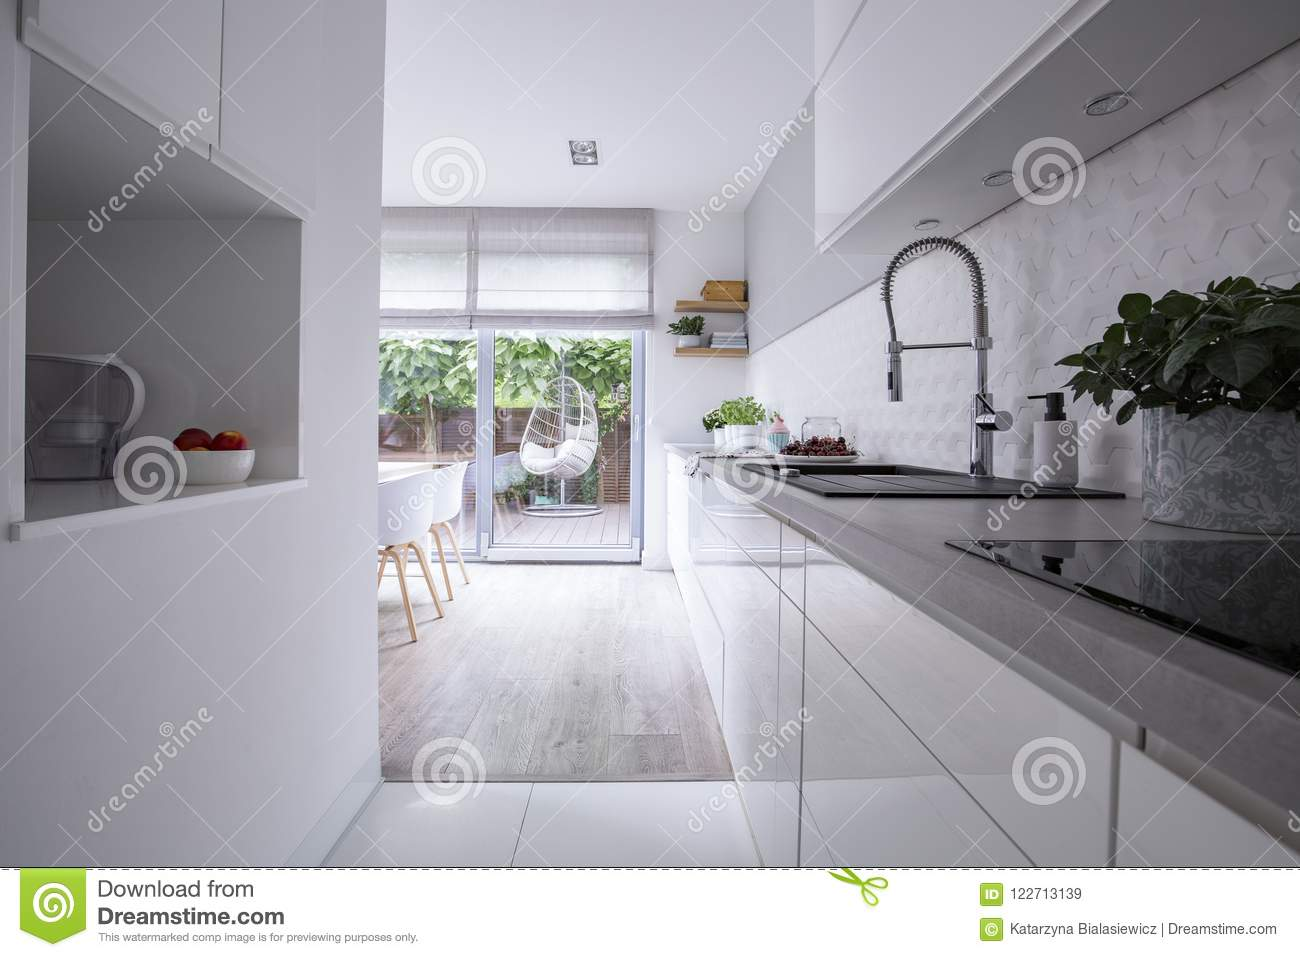 White cabinets in bright modern kitchen interior of house with terrace. Real photo